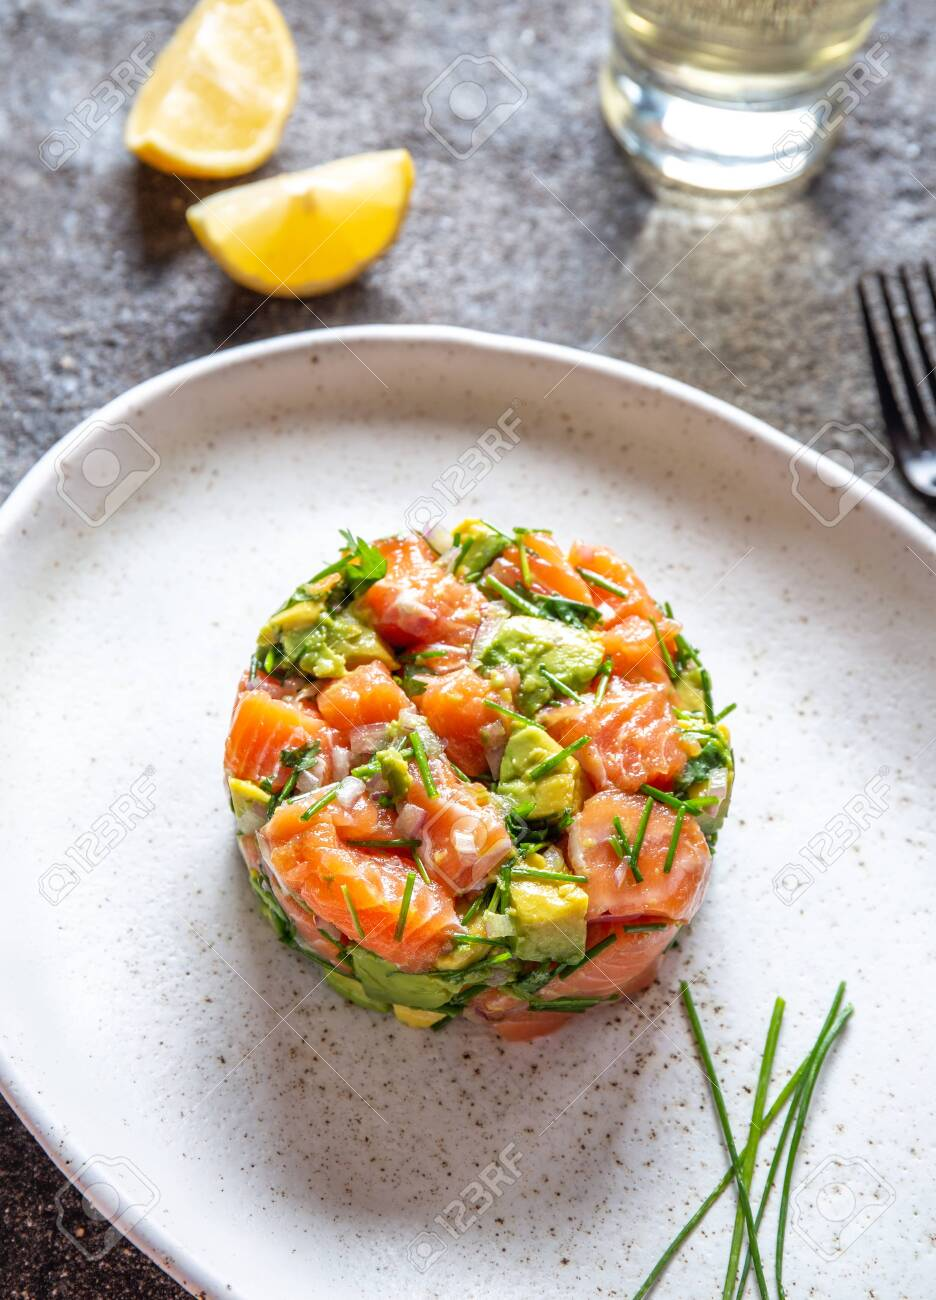 PERUVIAN FOOD. Salmon ceviche with avocado, spring onion and lemon on white plate served with white wine. - 138530701